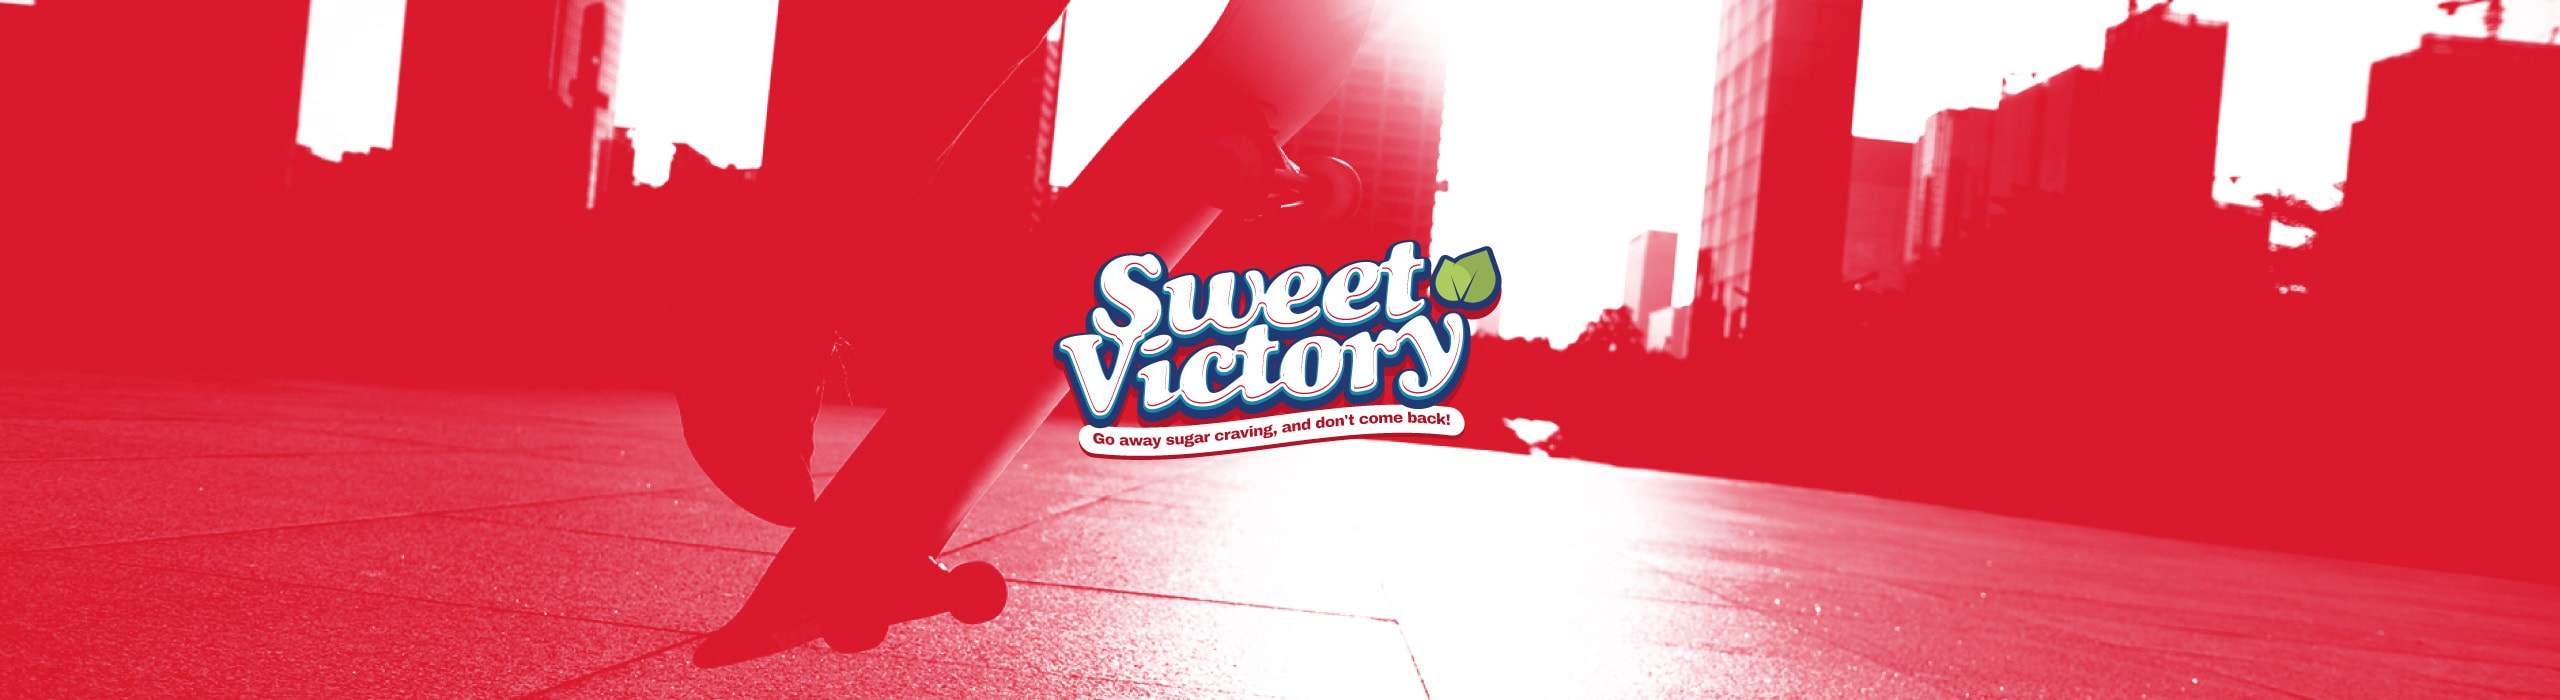 Sweet Victory - 01_a - Natie Branding Agency